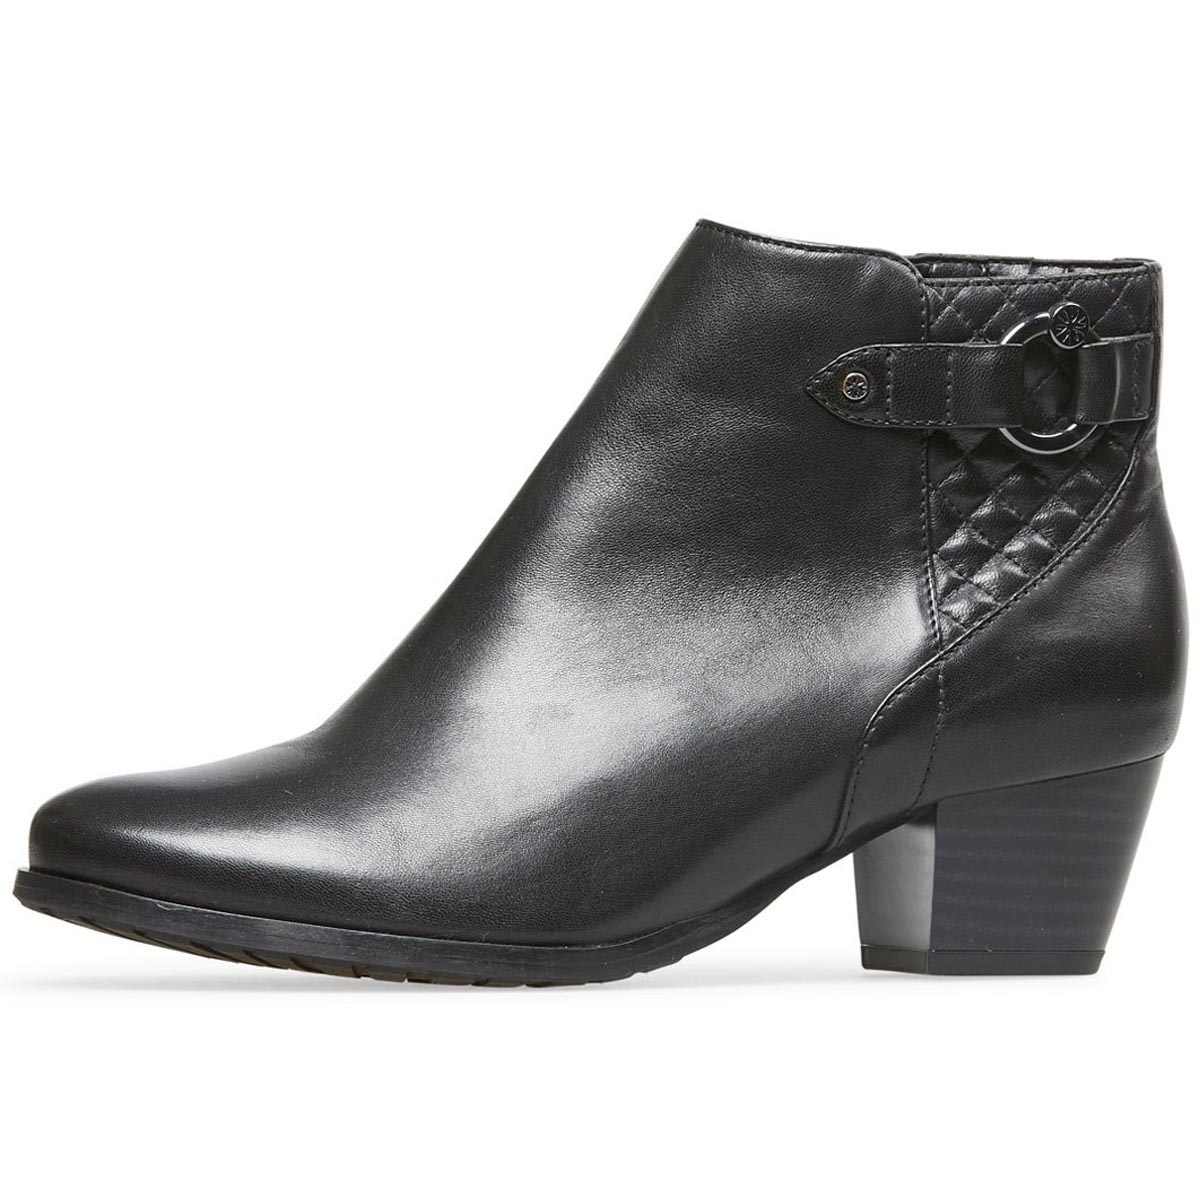 Van Dal - Tawny Black Leather Ankle Boot